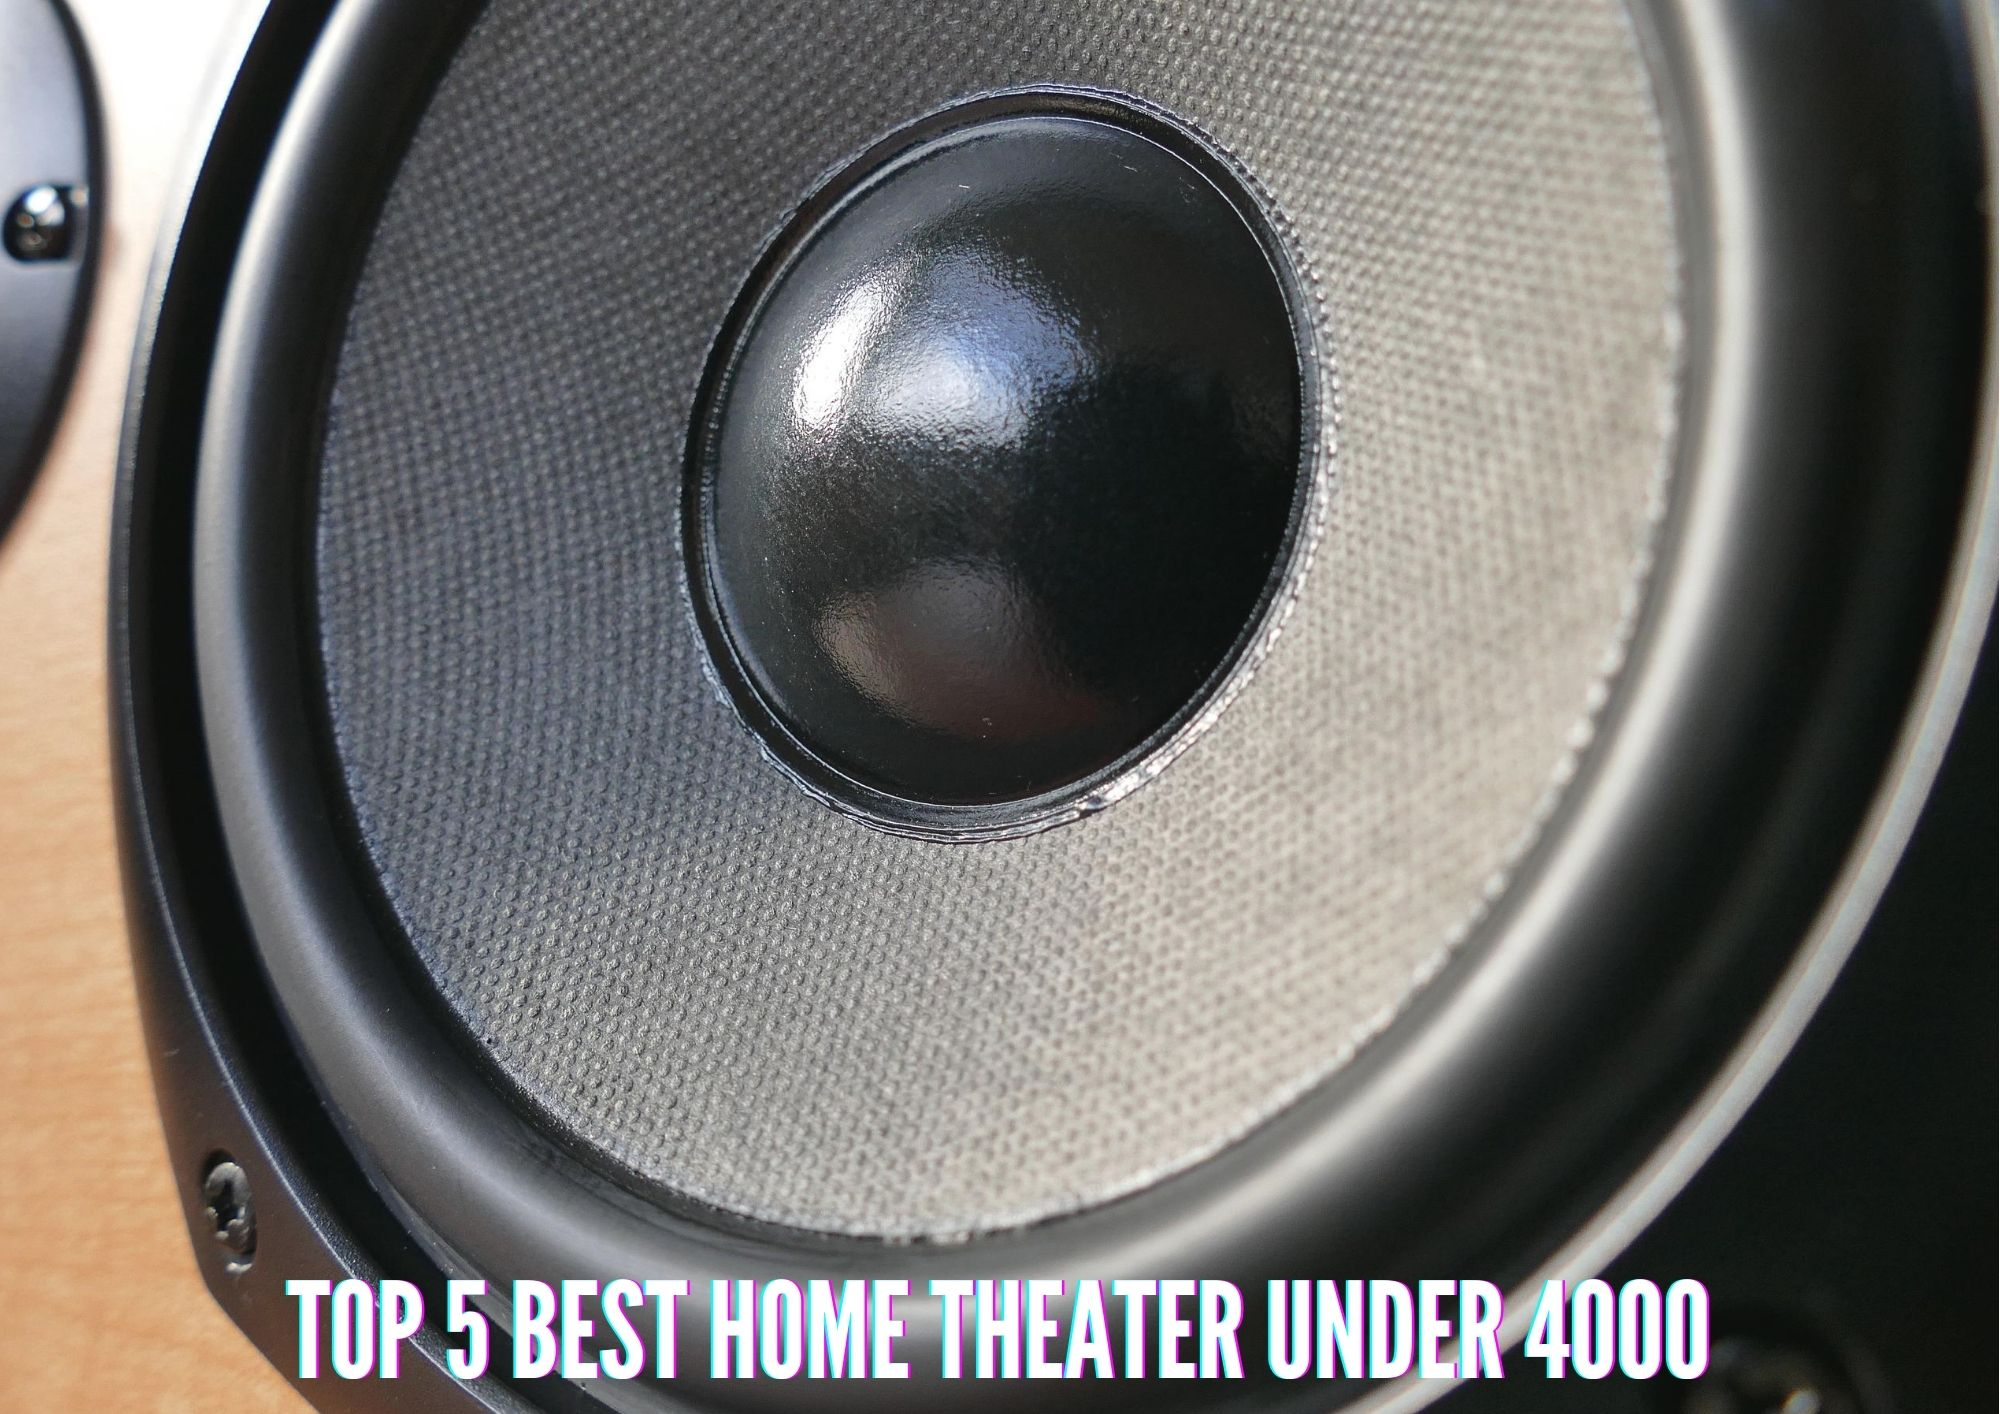 Top 5 Best Home Theater Under 4000 in 2021